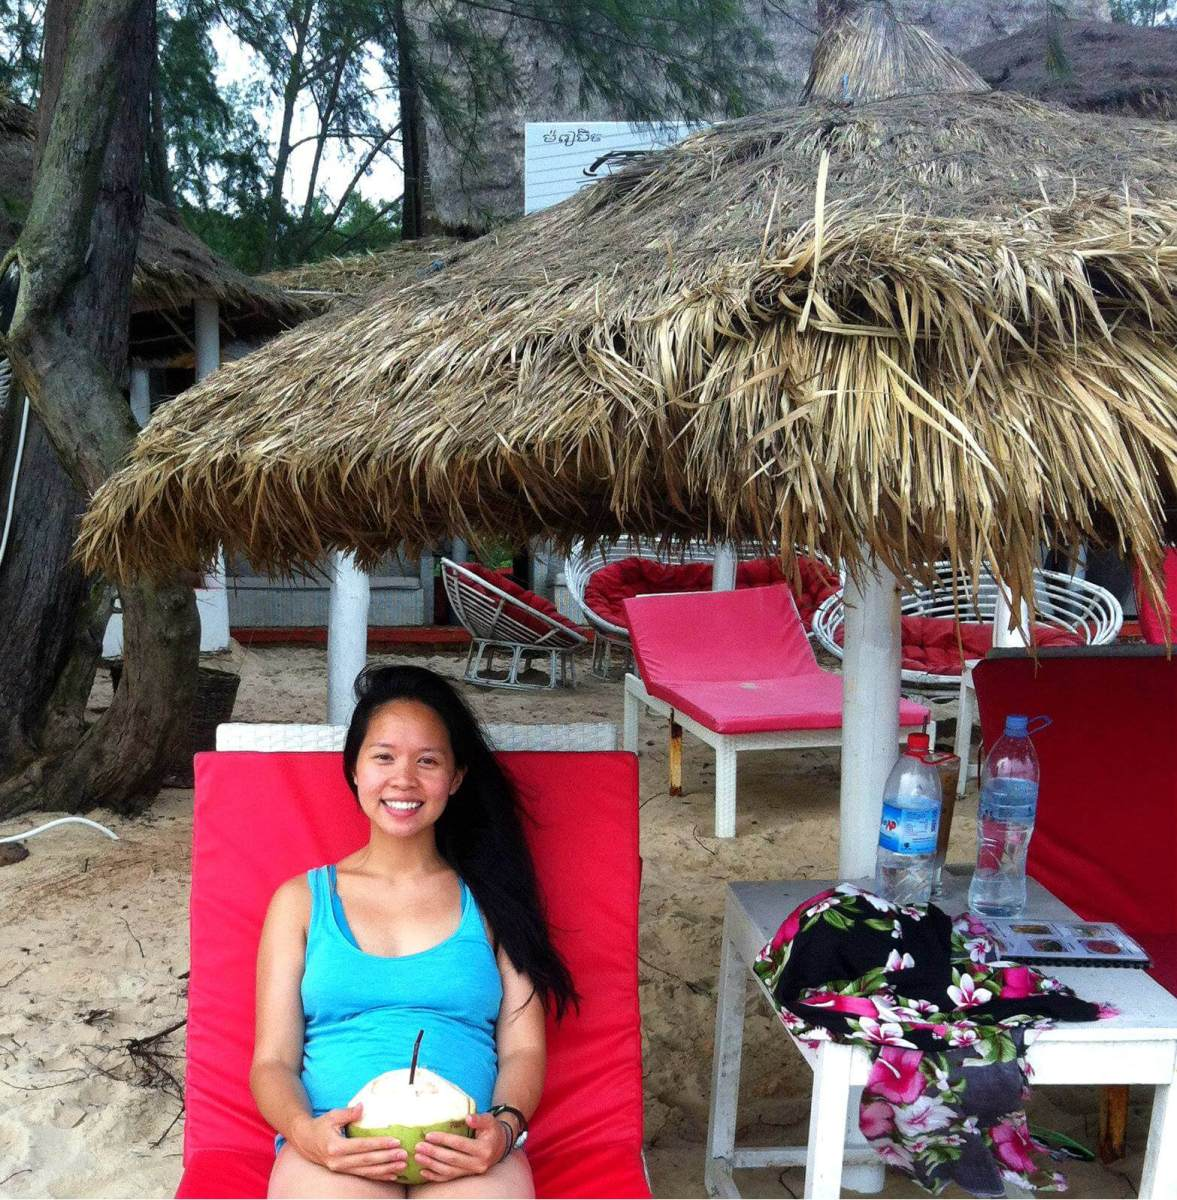 10 Quick Facts About the Founder & Creator of Travel With Trang